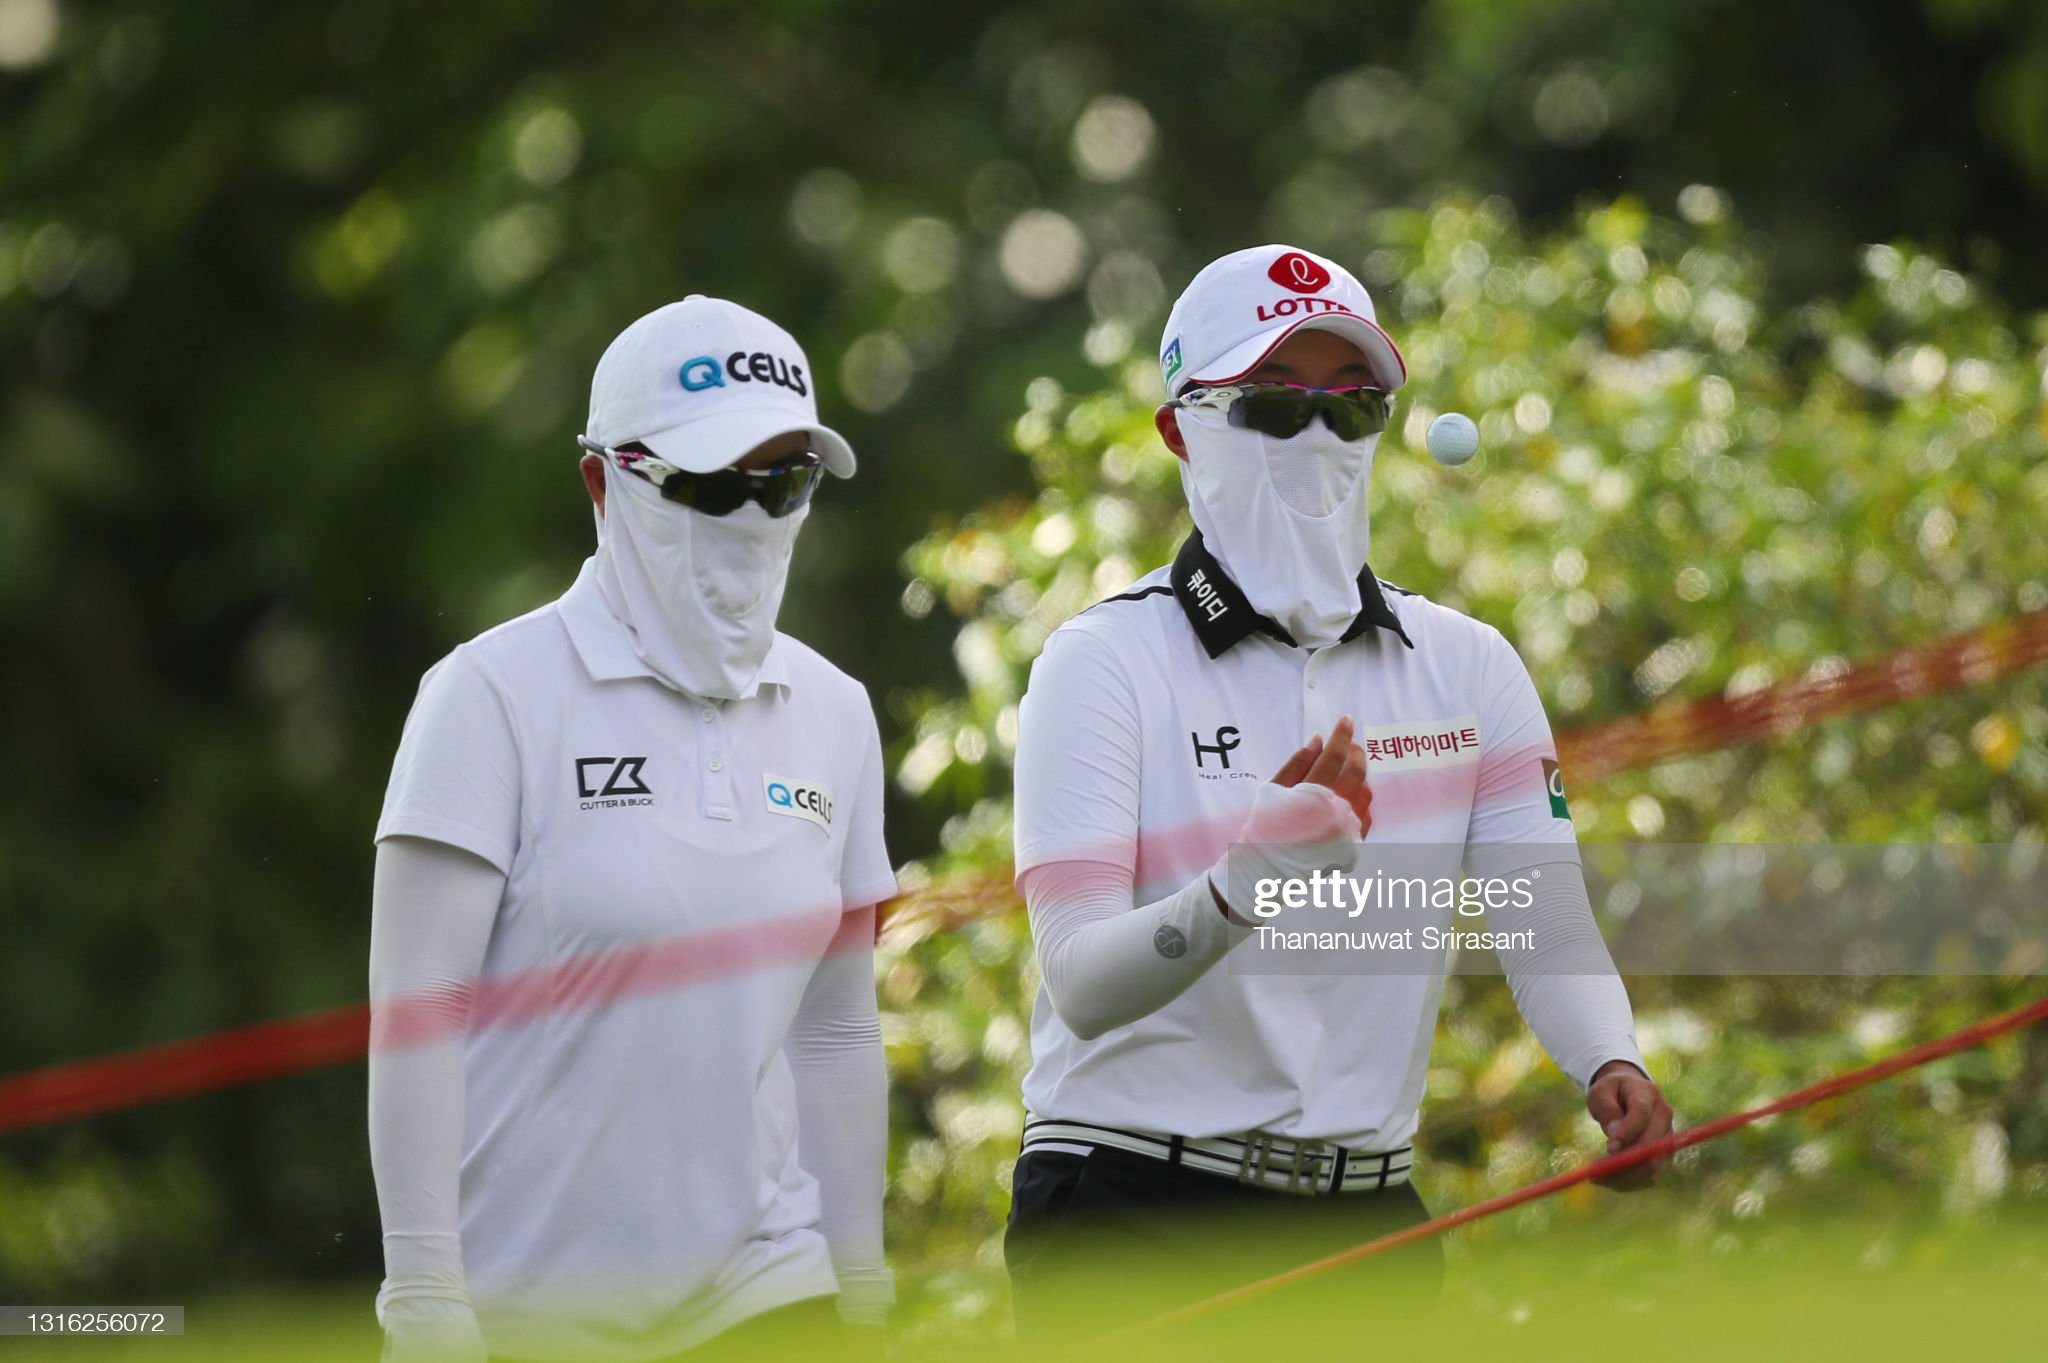 https://media.gettyimages.com/photos/eunhee-ji-and-hyo-joo-kim-of-republic-of-korea-walk-during-the-round-picture-id1316256072?s=2048x2048